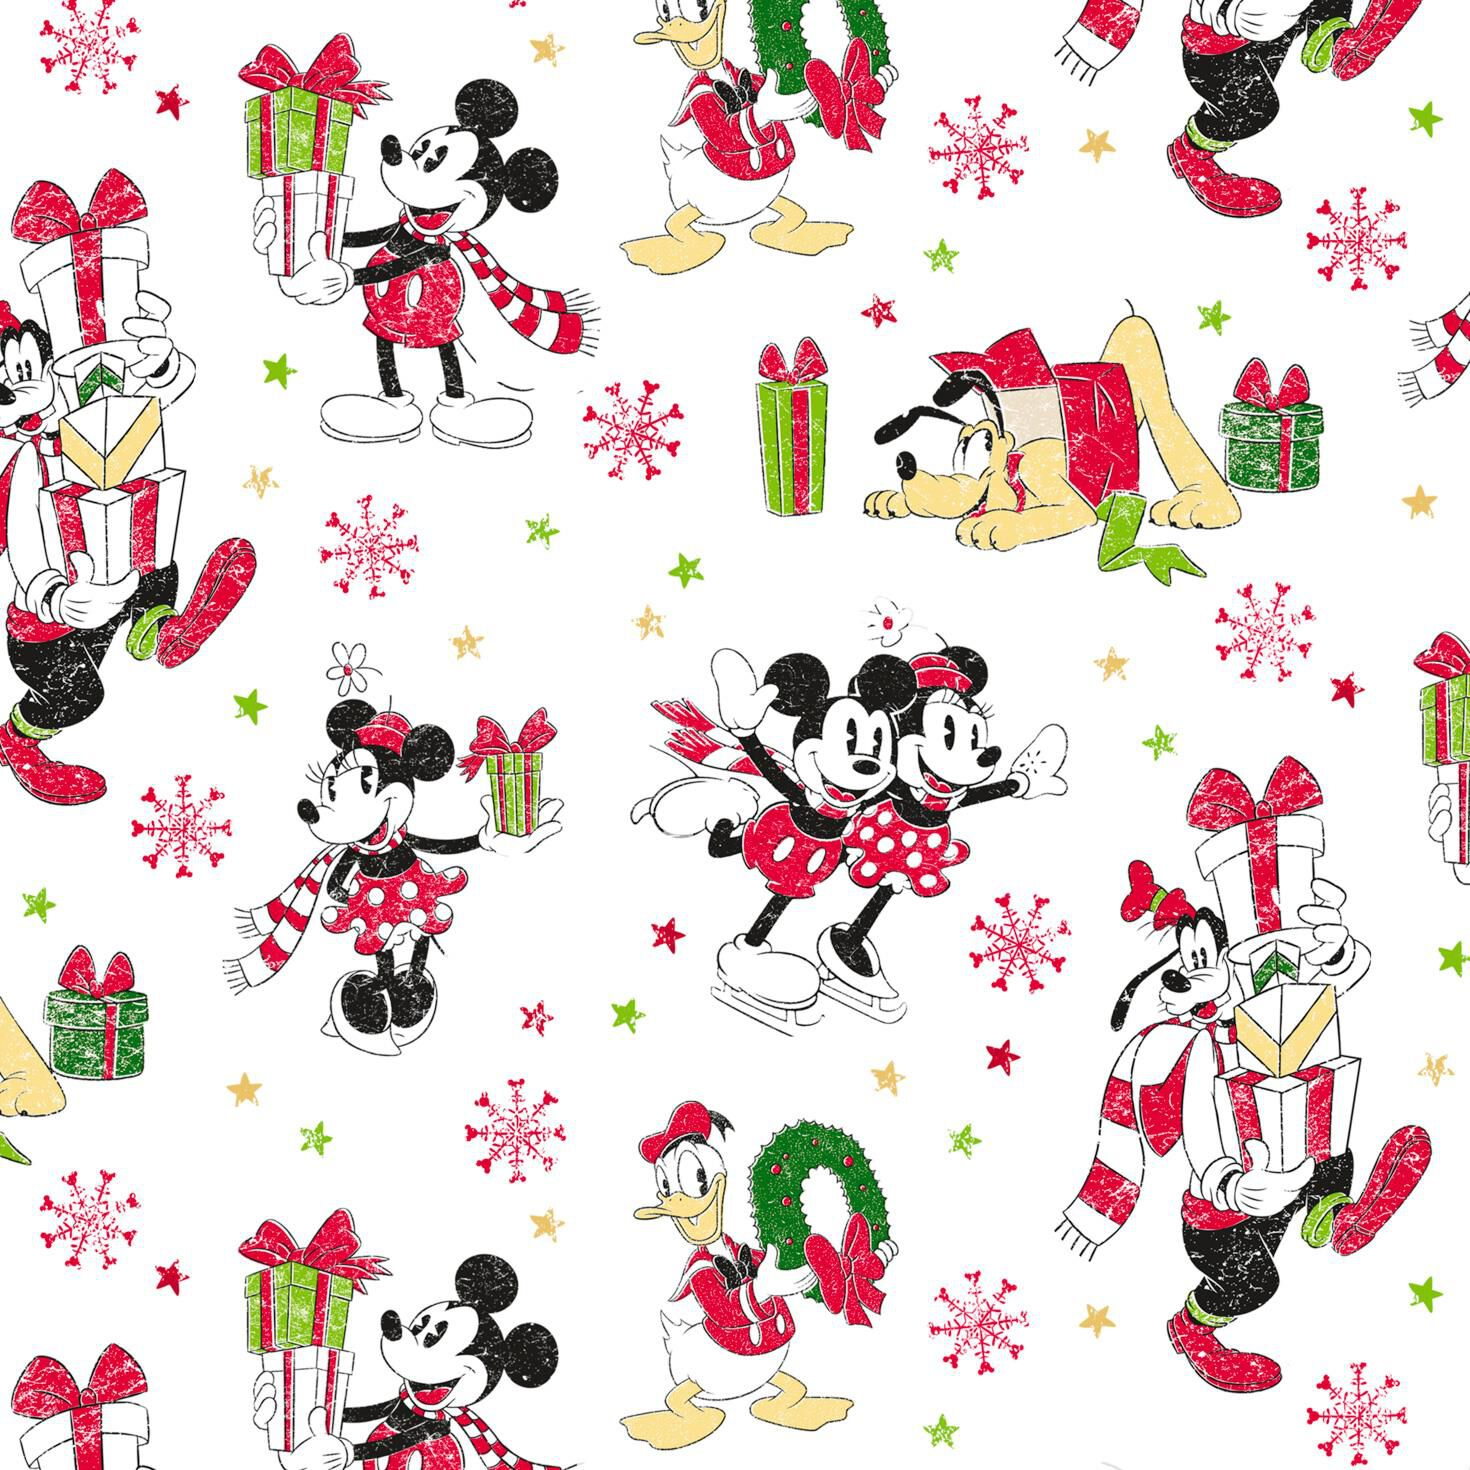 disney mickey mouse and friends jumbo christmas wrapping paper roll 80 sq ft wrapping paper hallmark